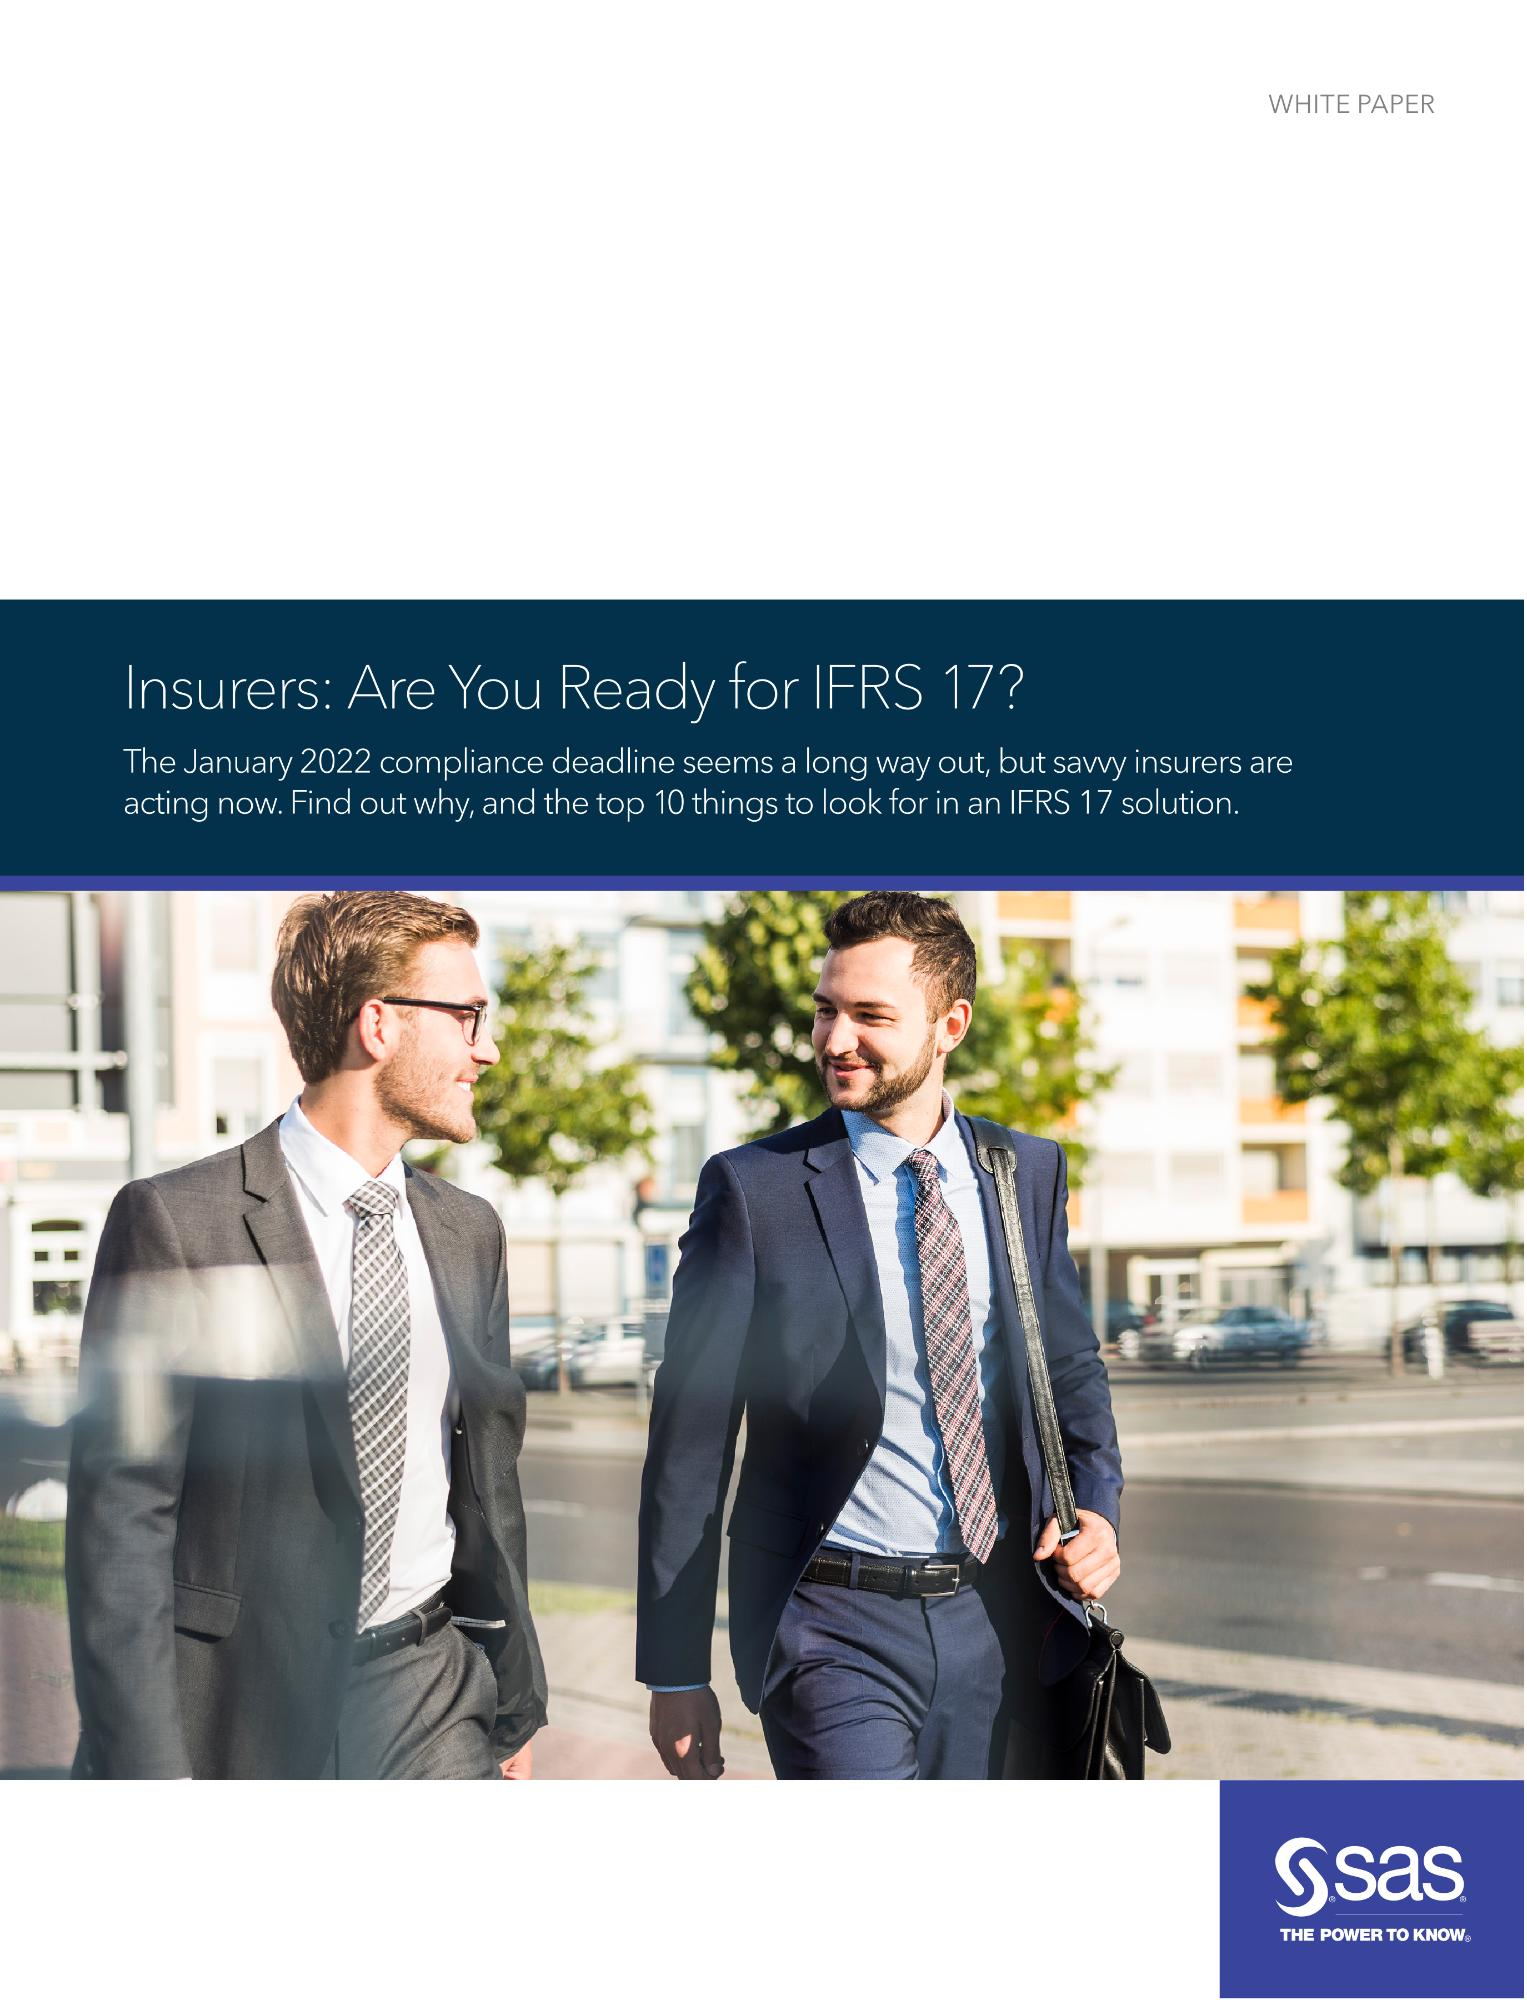 Insurers: Are You Ready for IFRS 17?